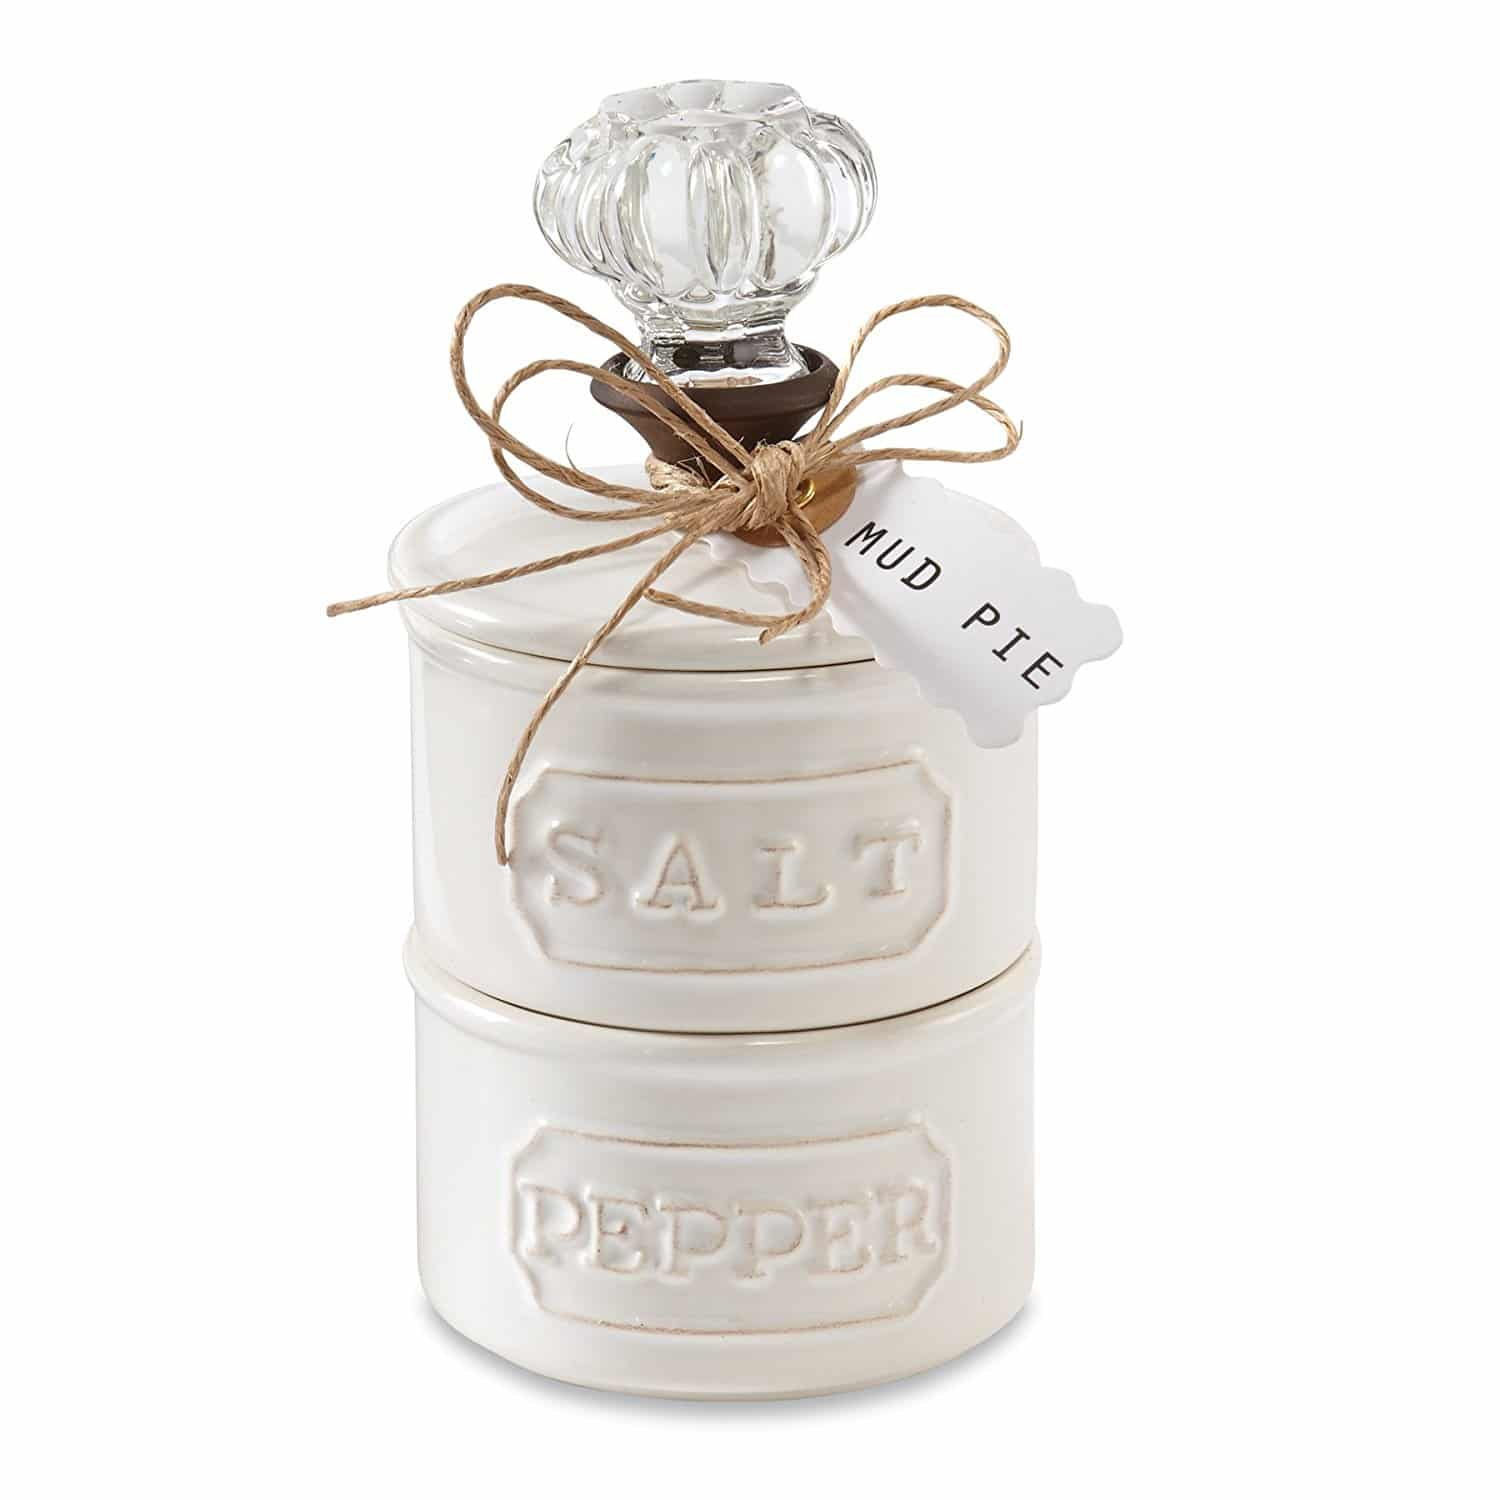 Garden party essentials mud pie salt and pepper shaker